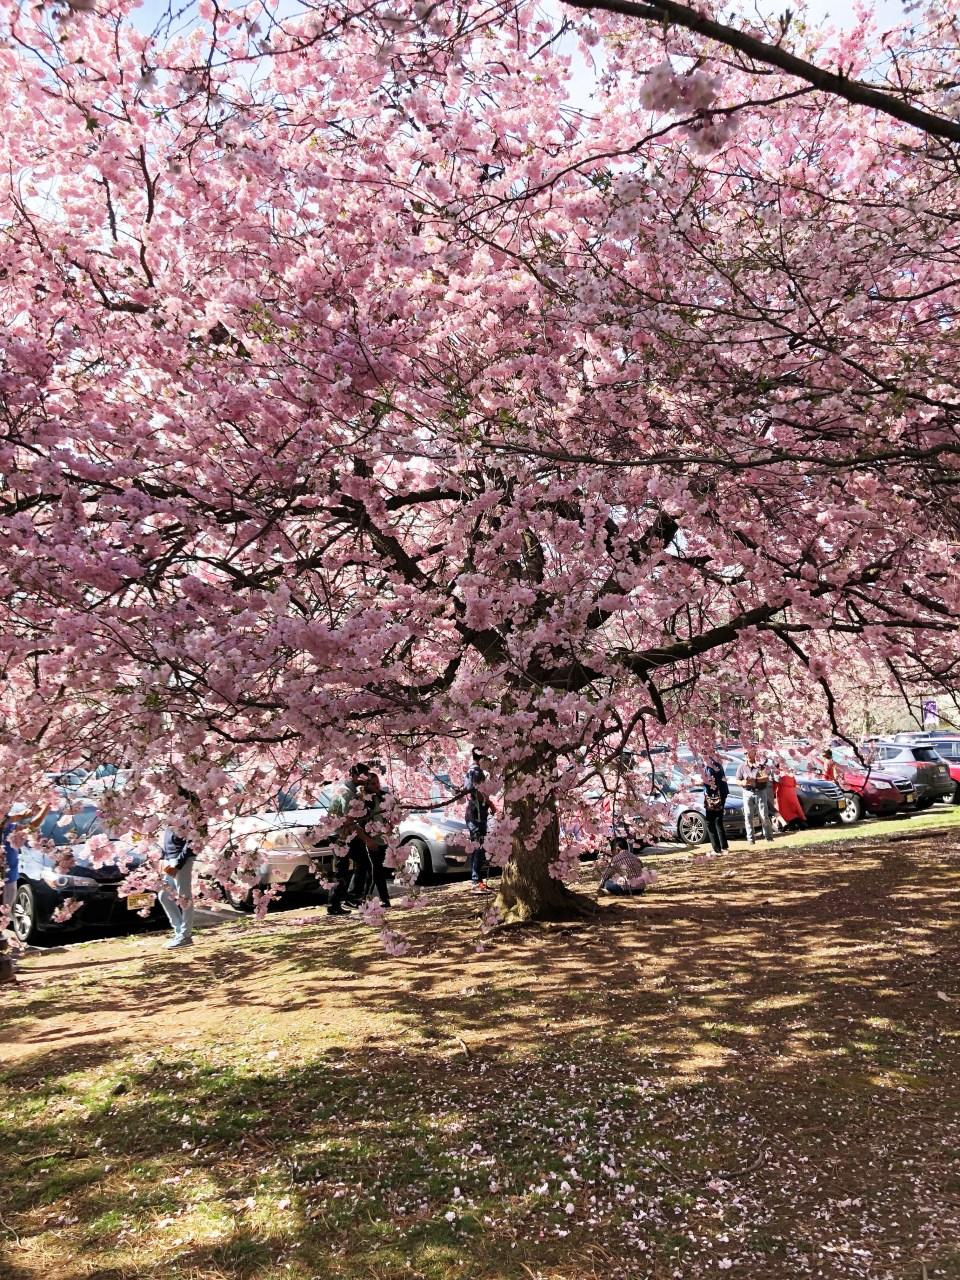 Branch Brook Park - Cherry Blossom Festival 2